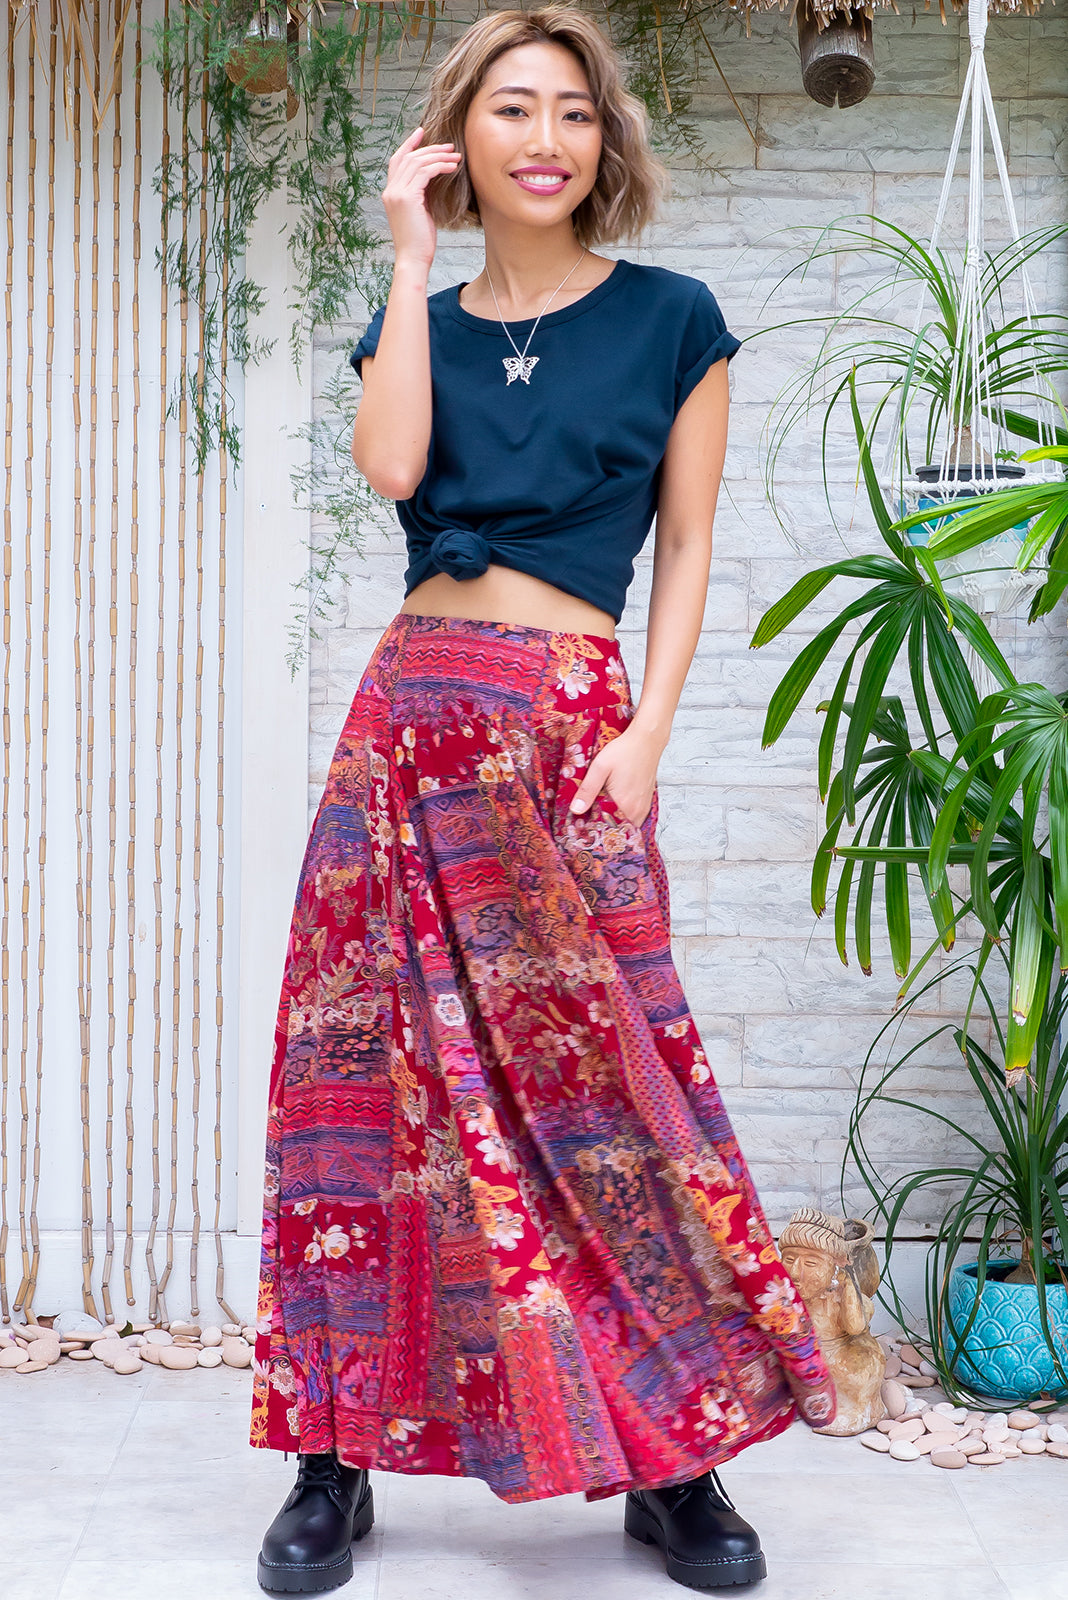 The Atlantis Red Renaissance Maxi Skirt features double V-shaped waist yoke, inset panels from the yoke down, elasticated & ruched back of waist, side pockets, shapely hemline and 100% viscose in retro, red 80's inspired patchwork print.